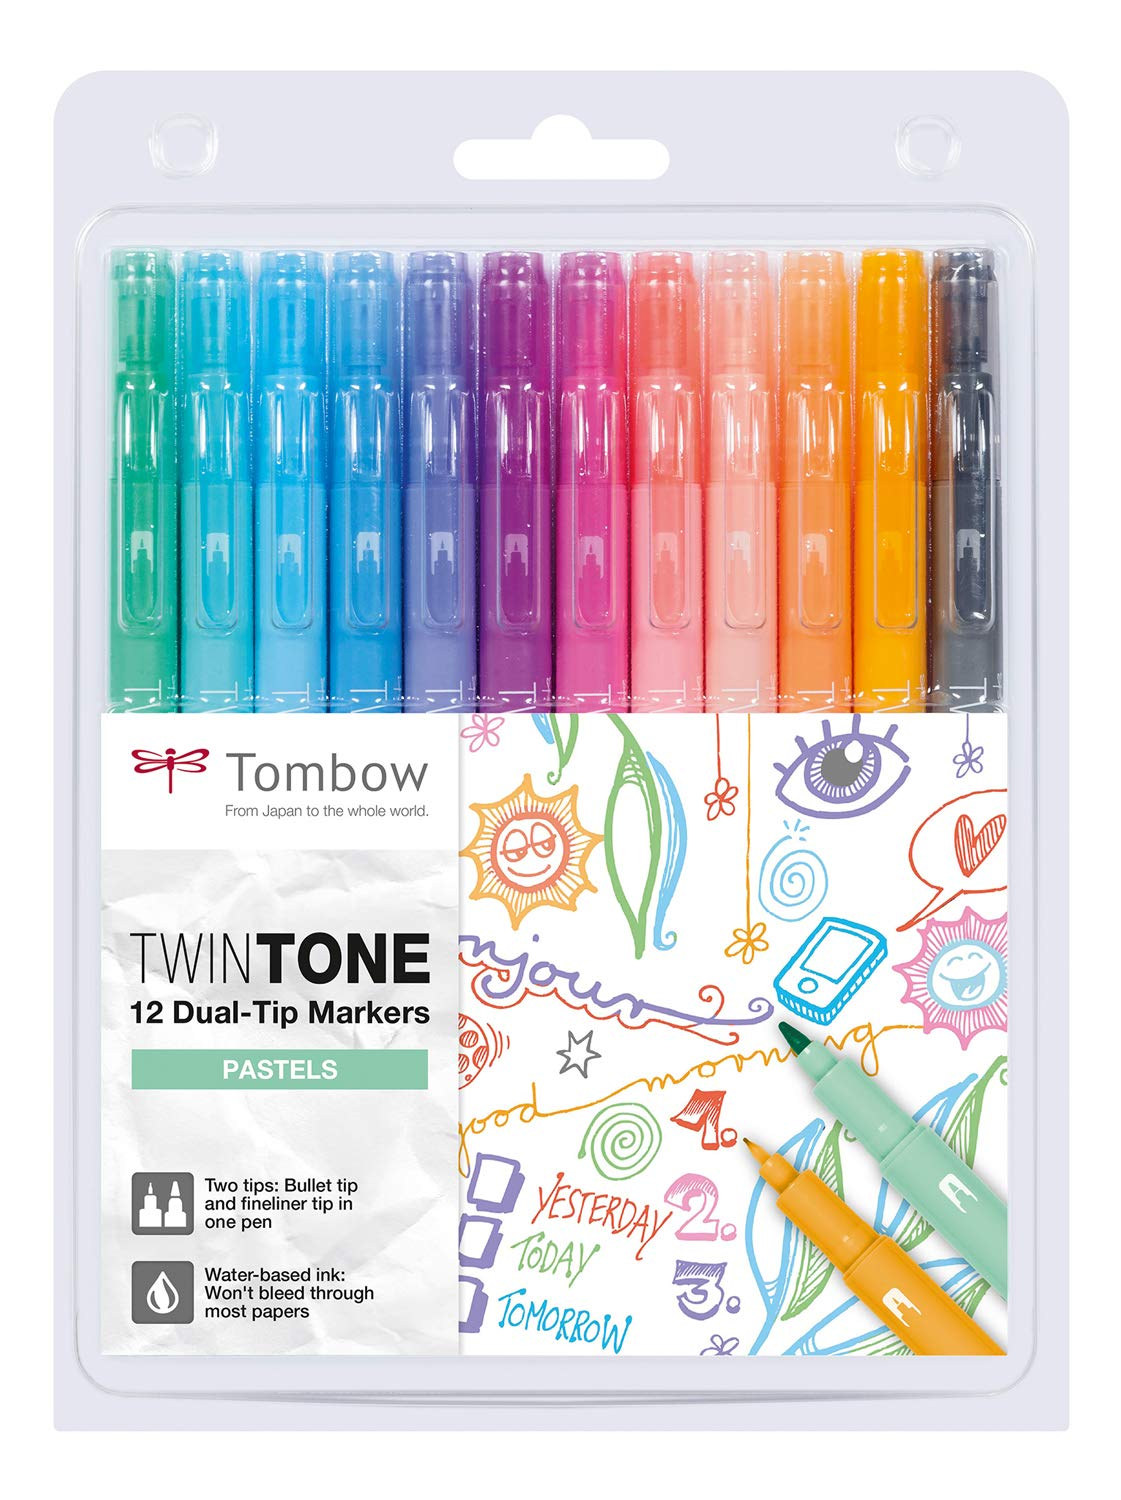 Tombow WS-PK-12P-2 Twin Tone Dual-Tip Marker Pastel Colours Pack of 12